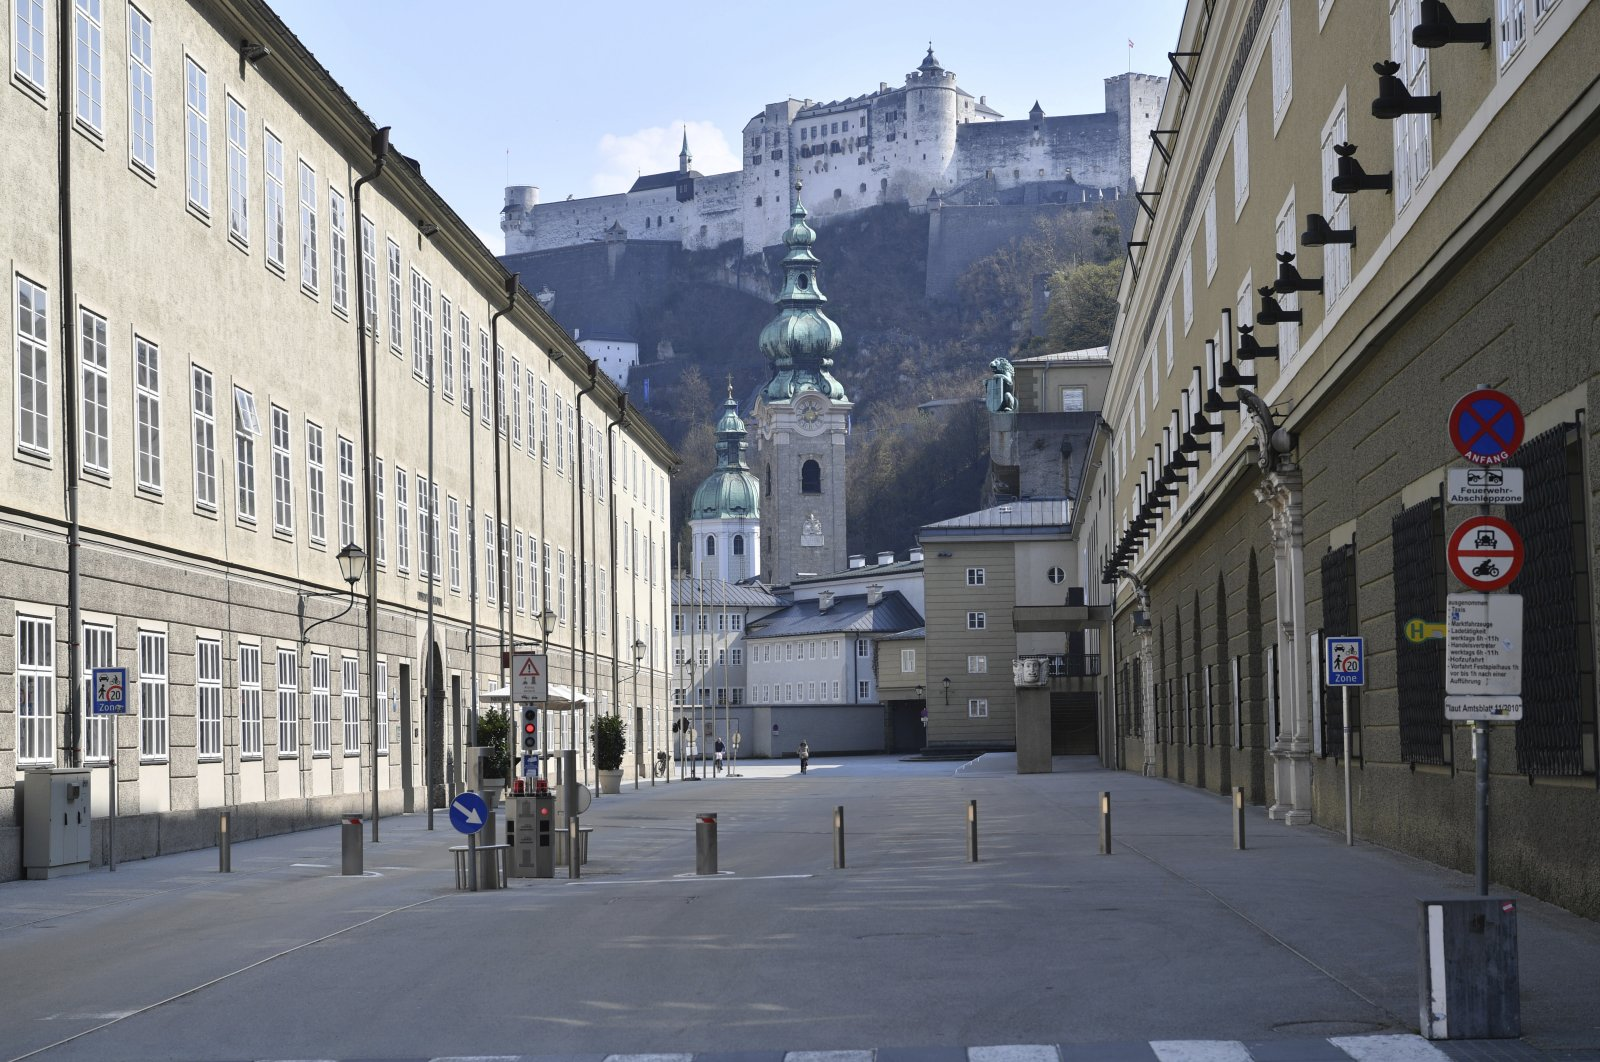 """The famous Hofstallgasse with the """"Festung Hohensalzburg"""" in the background during rush hour in Salzburg, Austria, Friday, April 3, 2020. (AP Photo)"""